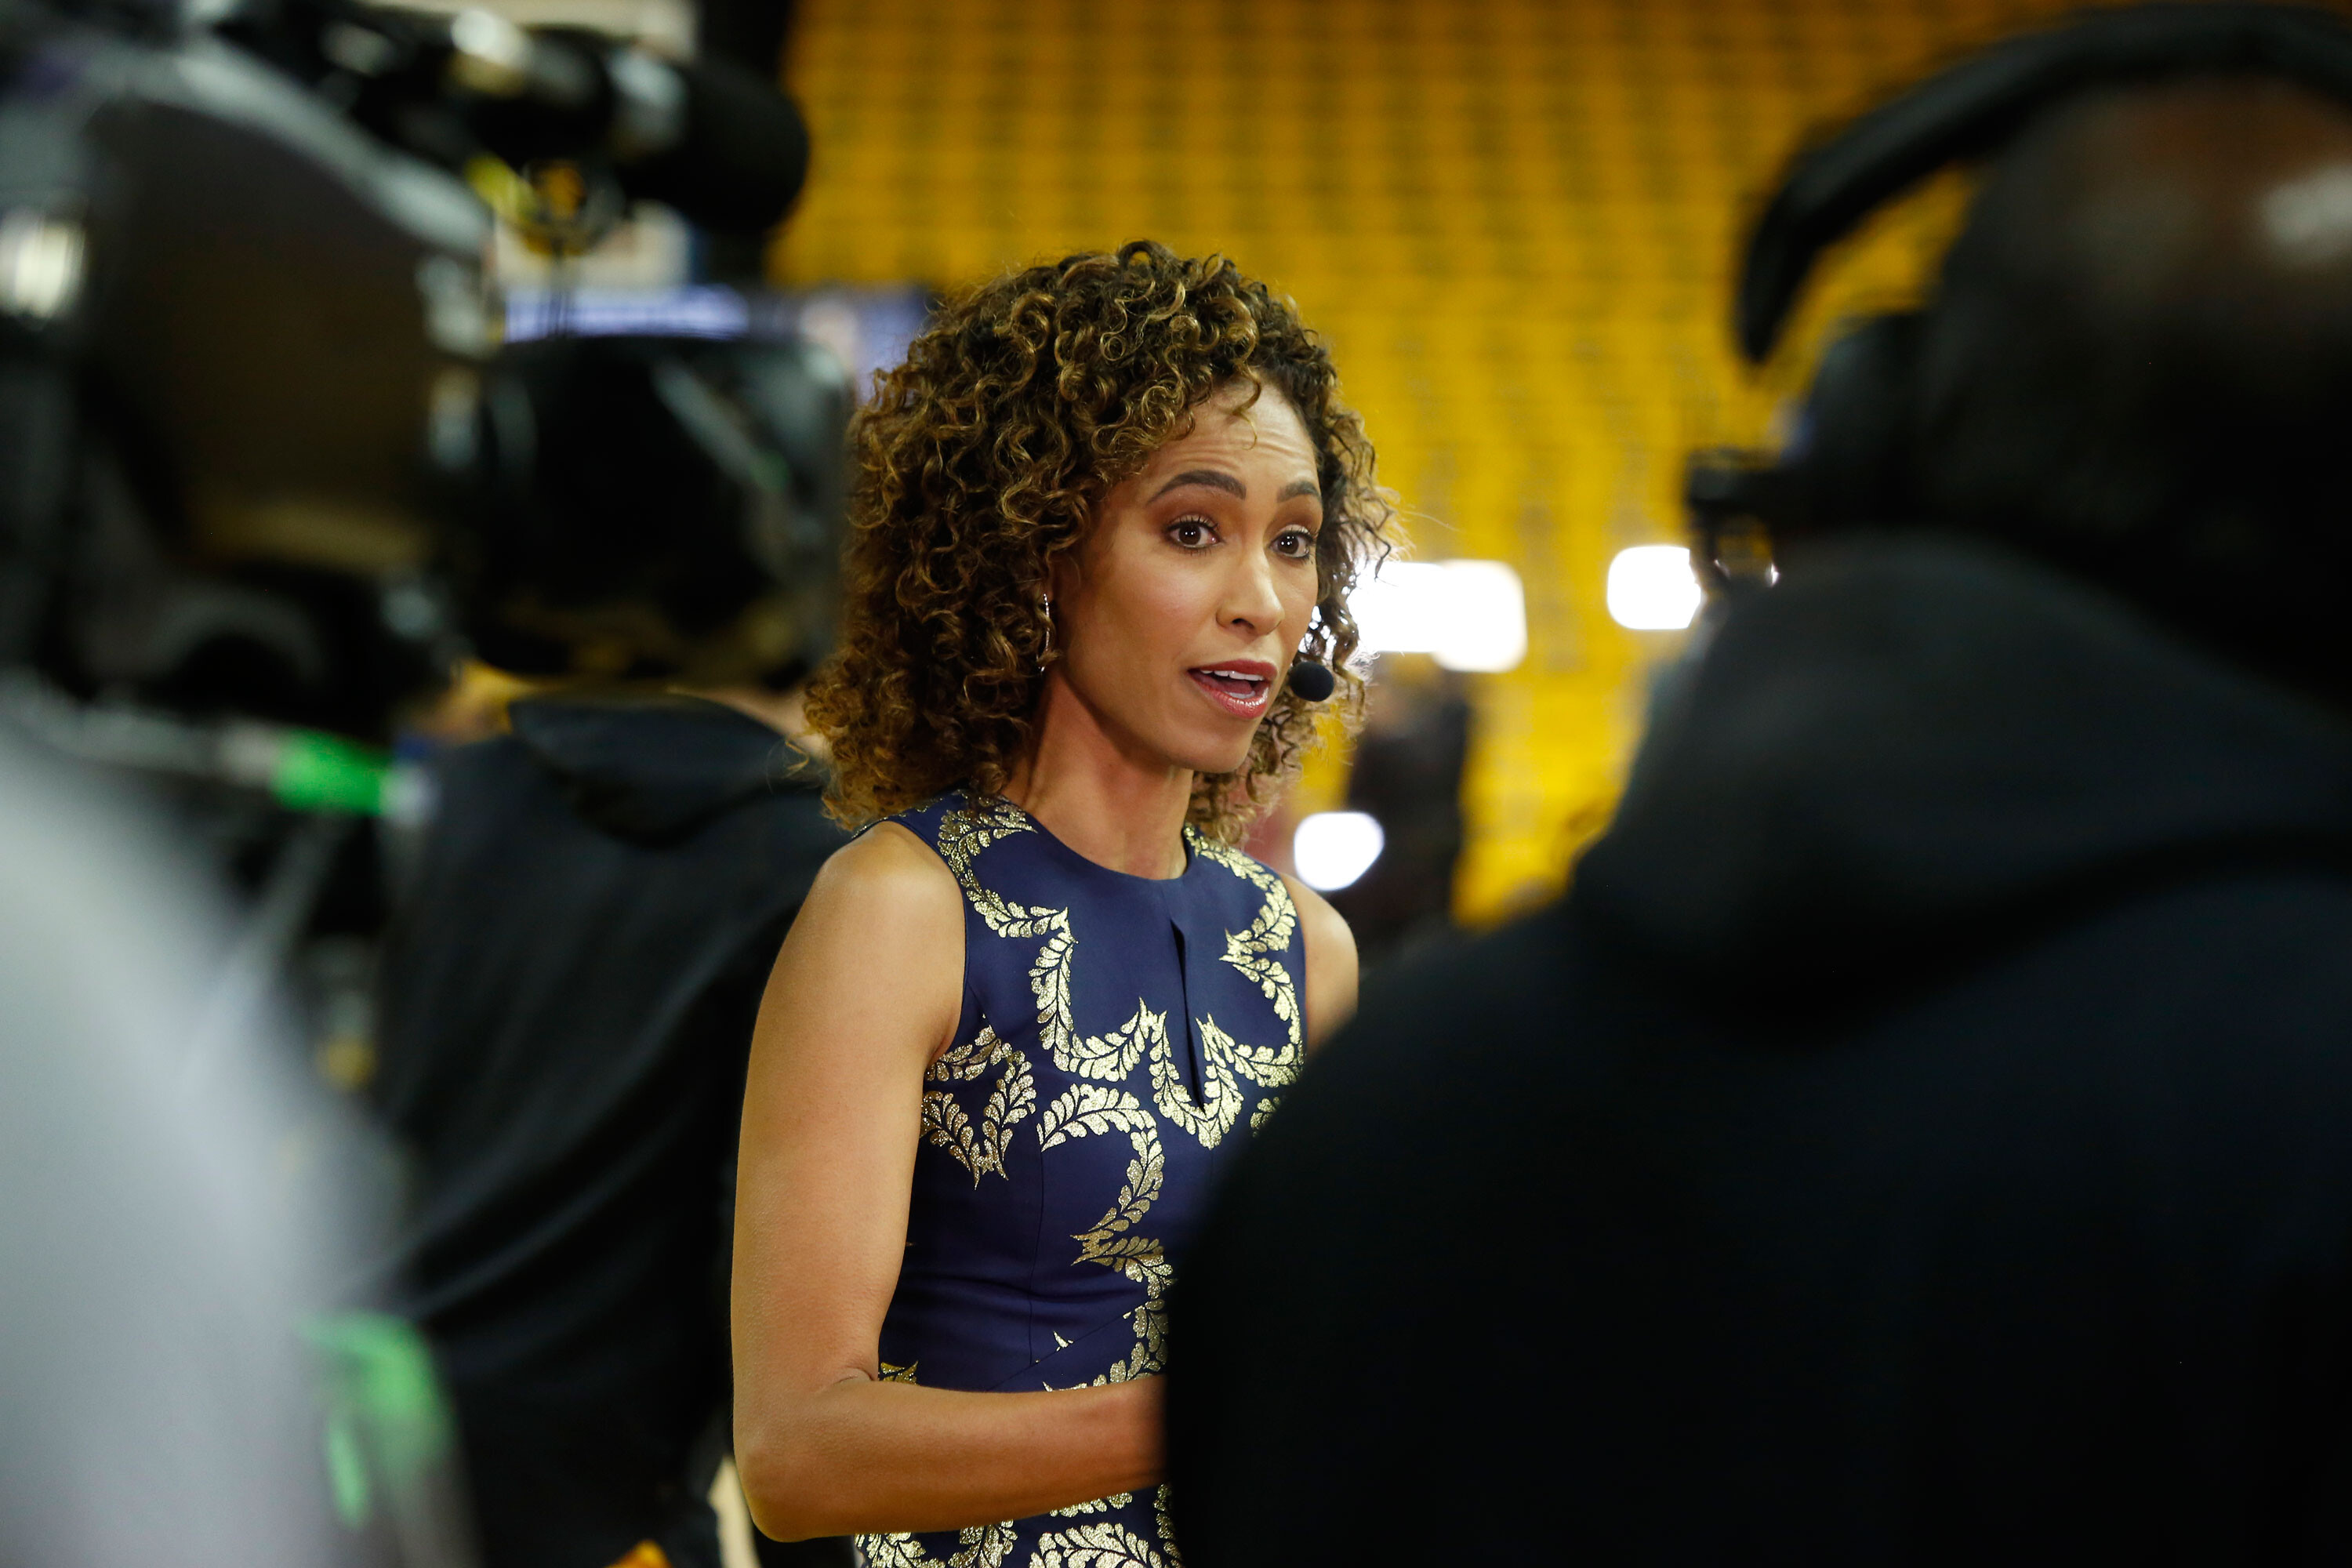 ESPN's Sage Steele apologizes for controversial comments about Obama's racial identity and vaccine mandates